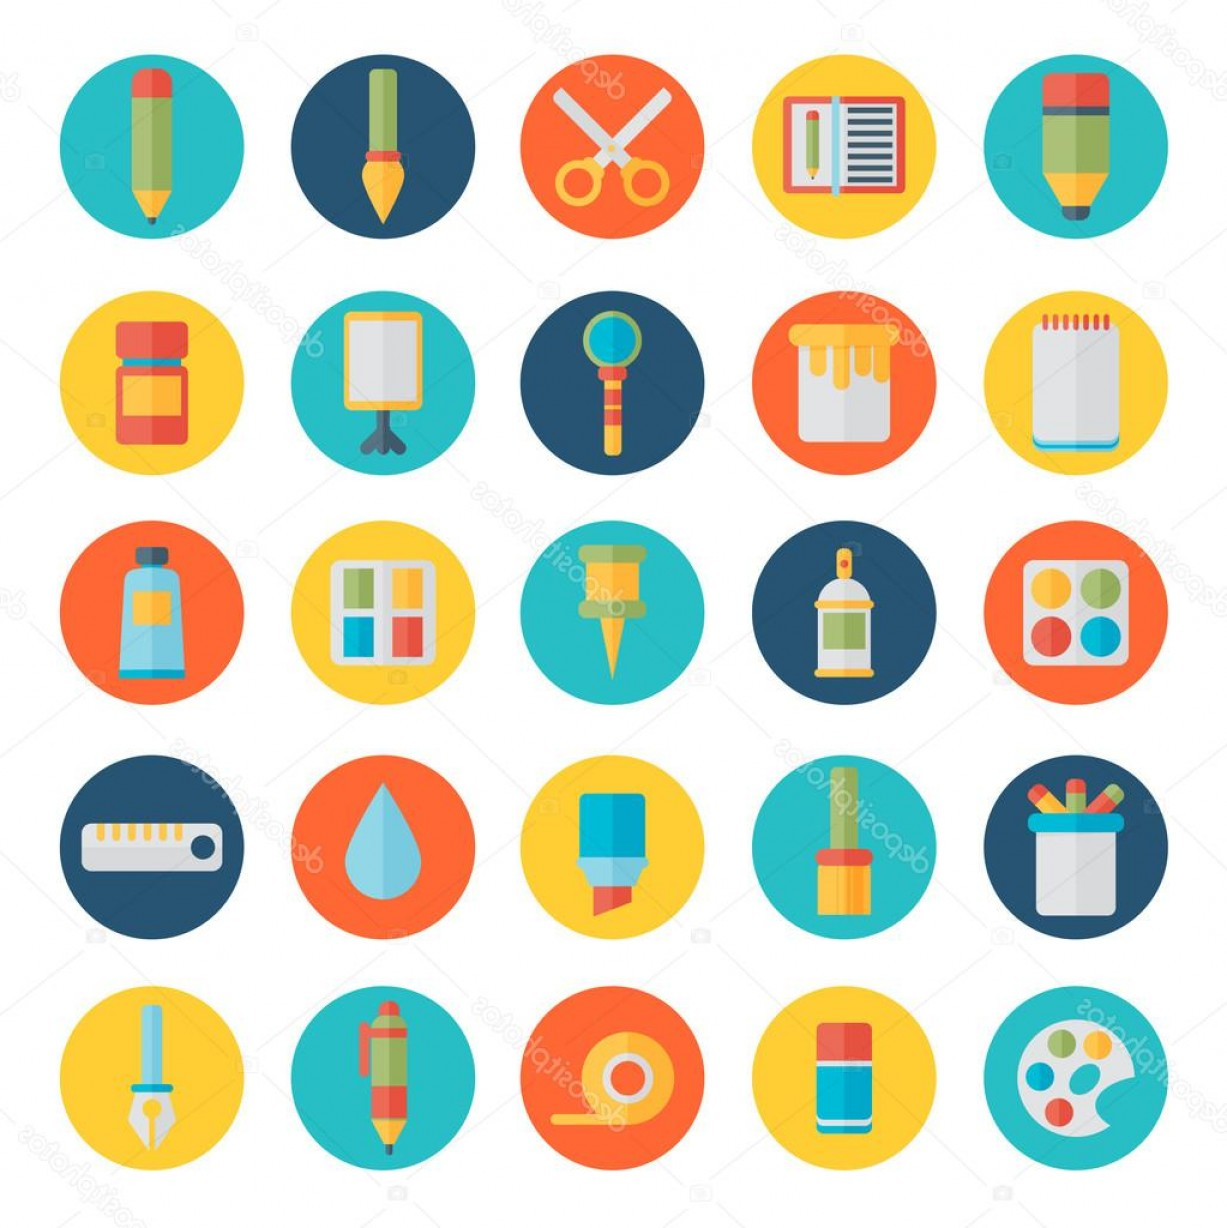 Supplies Vector Graphic: Stock Illustration Icons Set Of Art Supplies